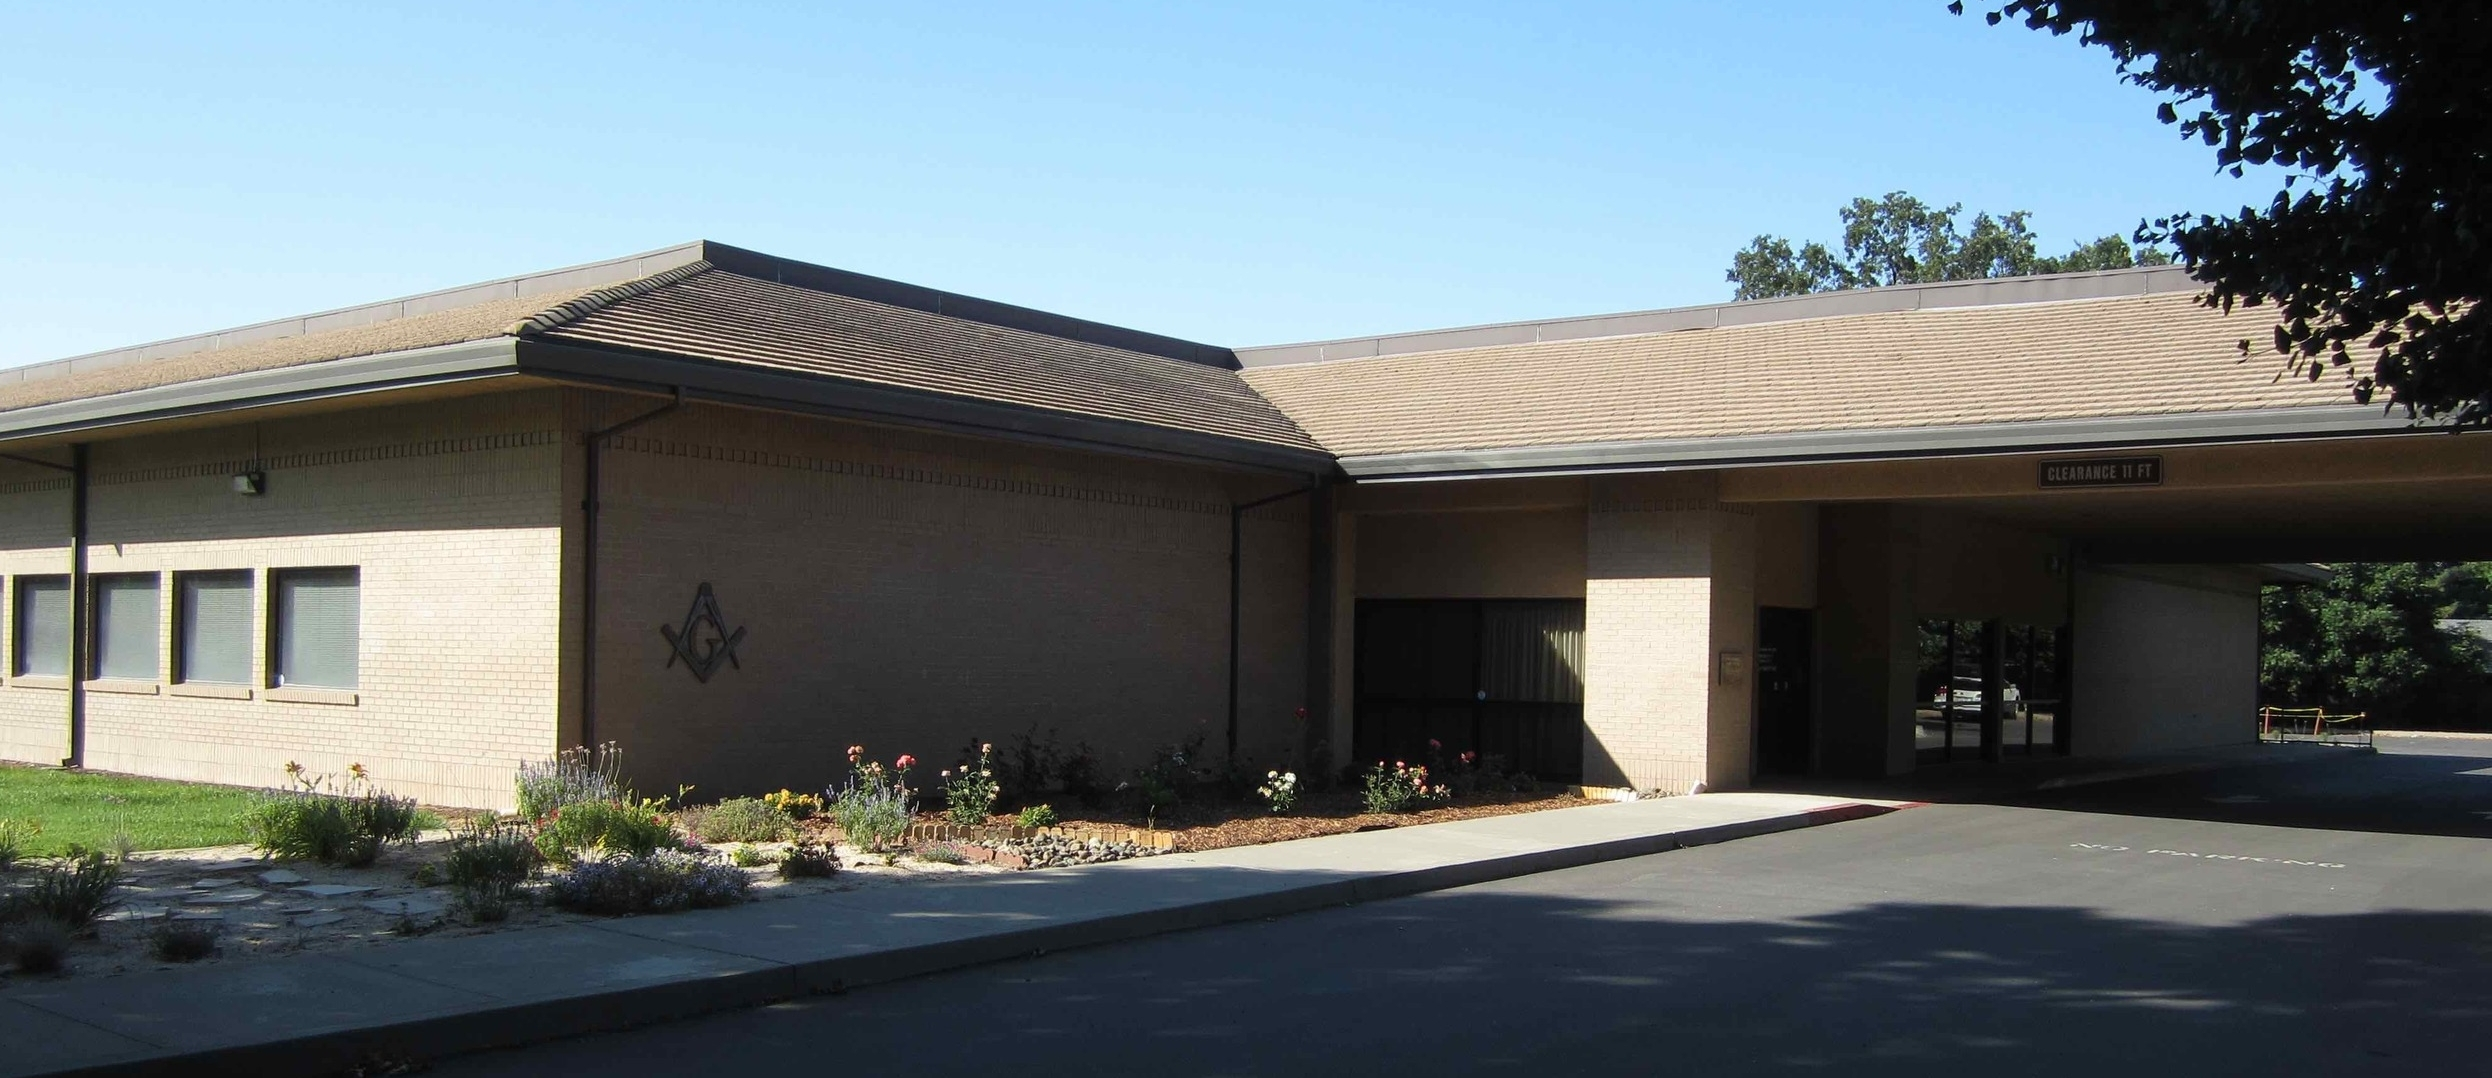 Current Lodge at 1110 E. East Ave, Chico, CA.